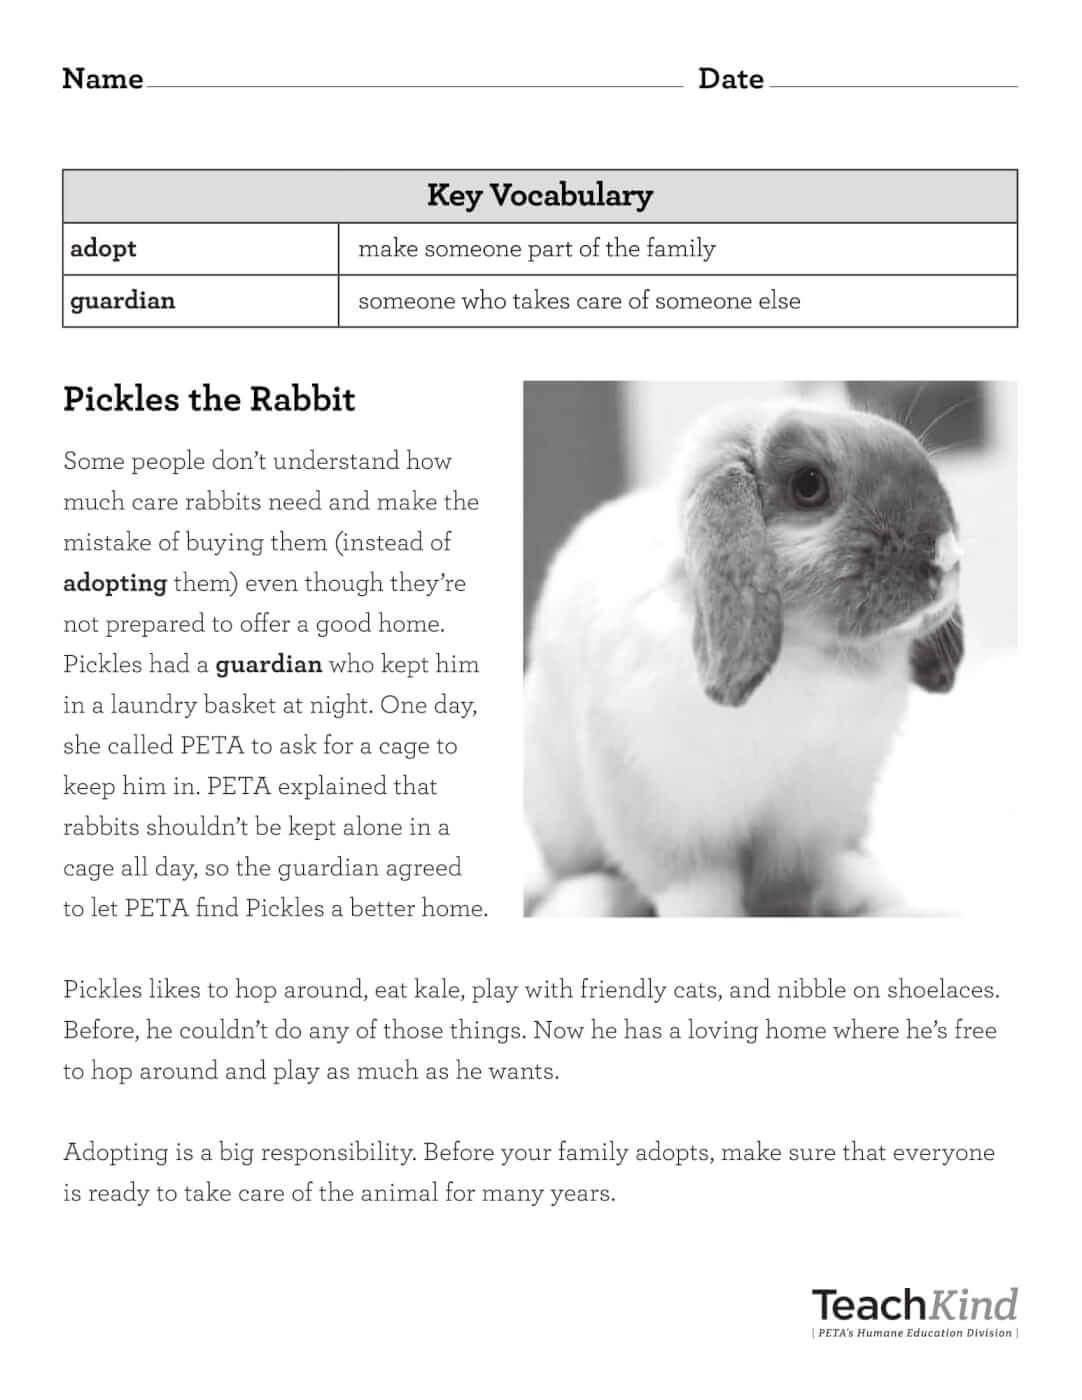 Teachkind Rescue Stories Pickles The Rabbit Comprehension Worksheets Reading Comprehension Worksheets Classroom Pets [ 1400 x 1082 Pixel ]